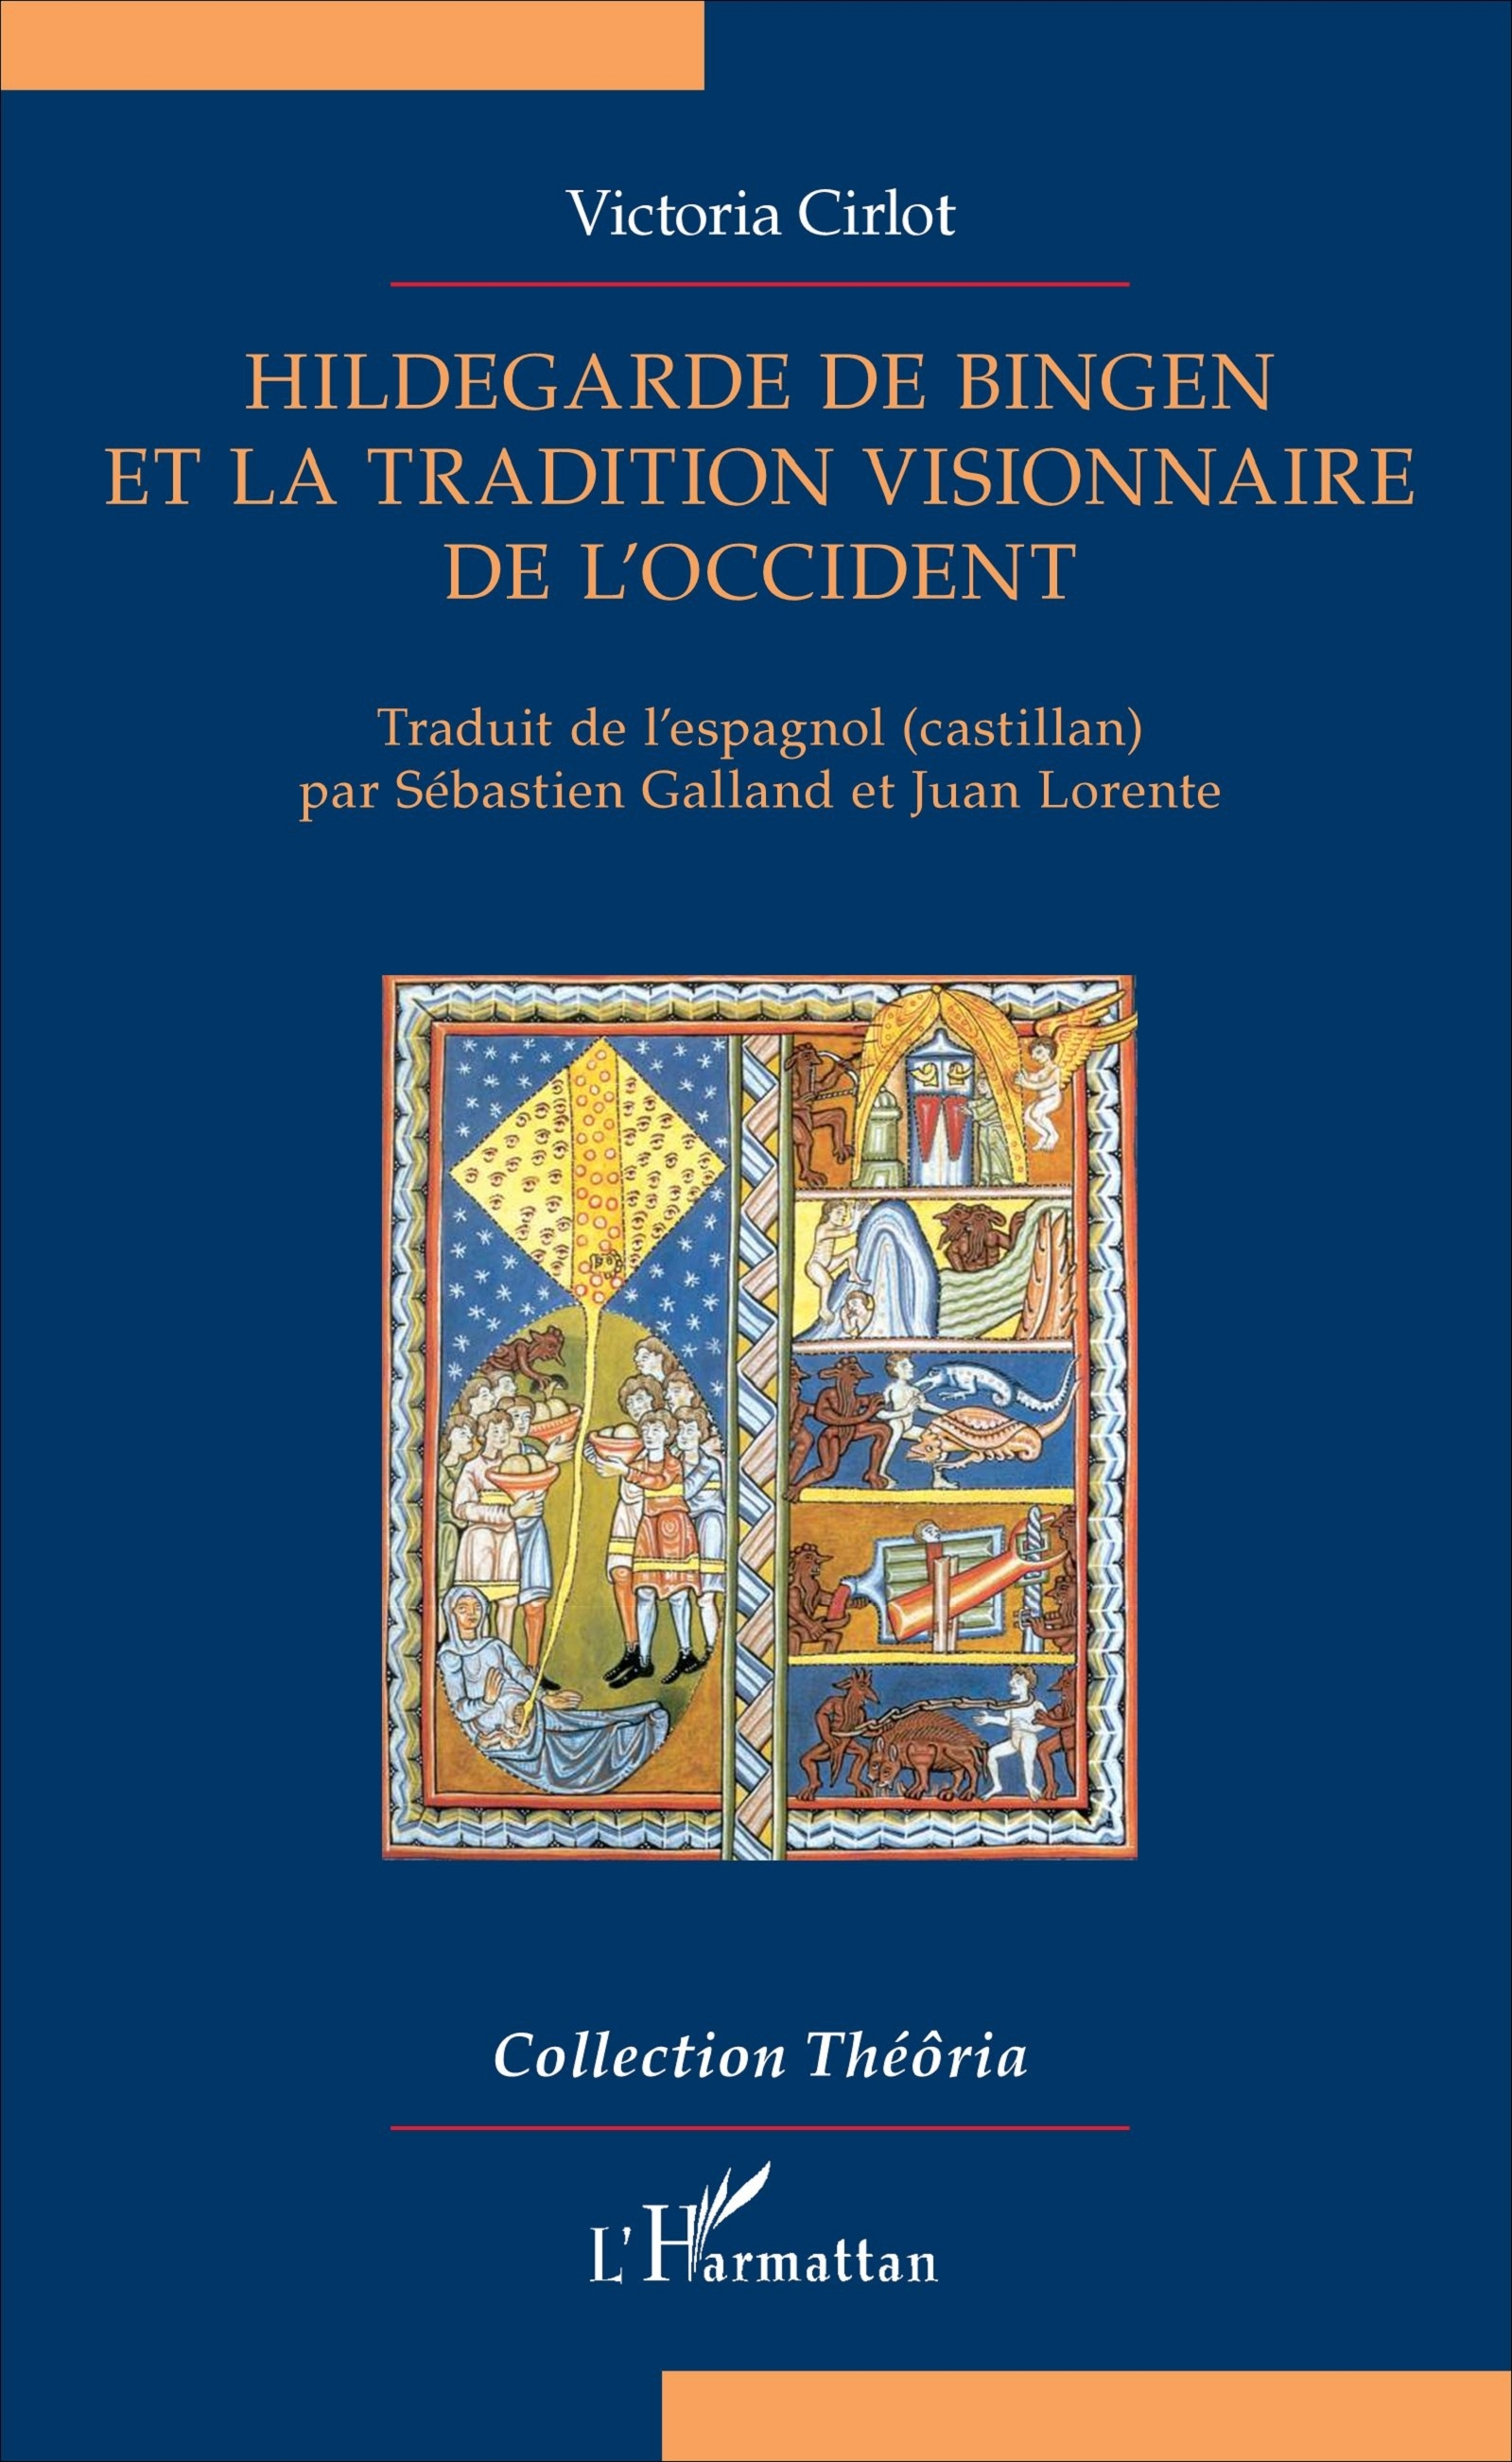 HILDEGARDE DE BINGEN ET LA TRADITION VISIONNAIRE DE L'OCCIDENT